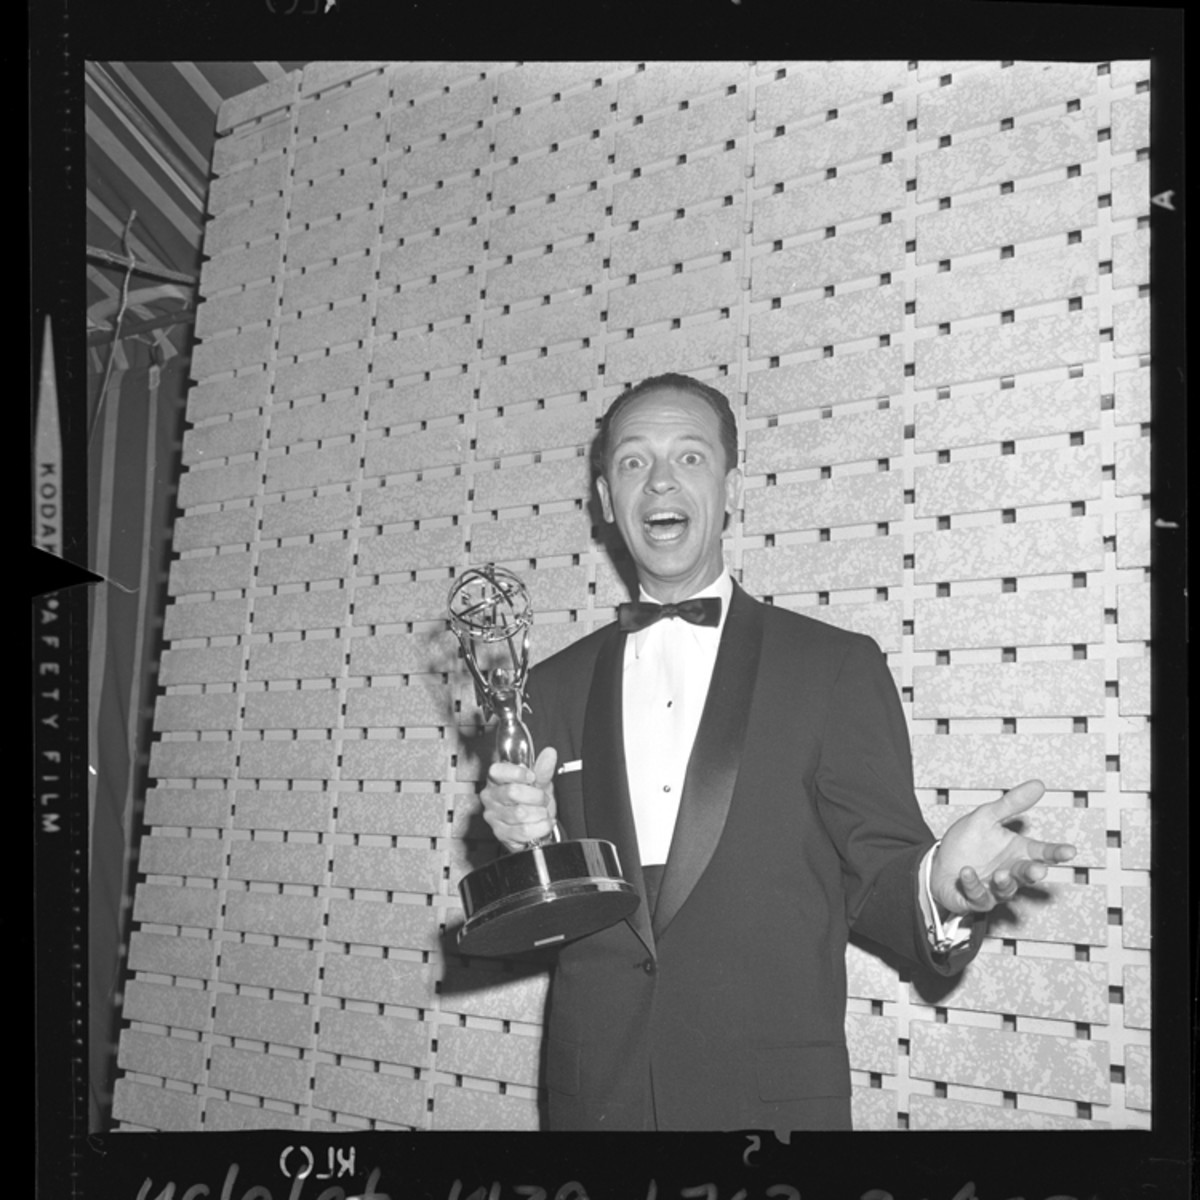 DON KNOTTS RECEIVES HIS FIRST EMMY AWARD FOR PORTRAYING DEPUTY BARNEY FIFE IN 1961